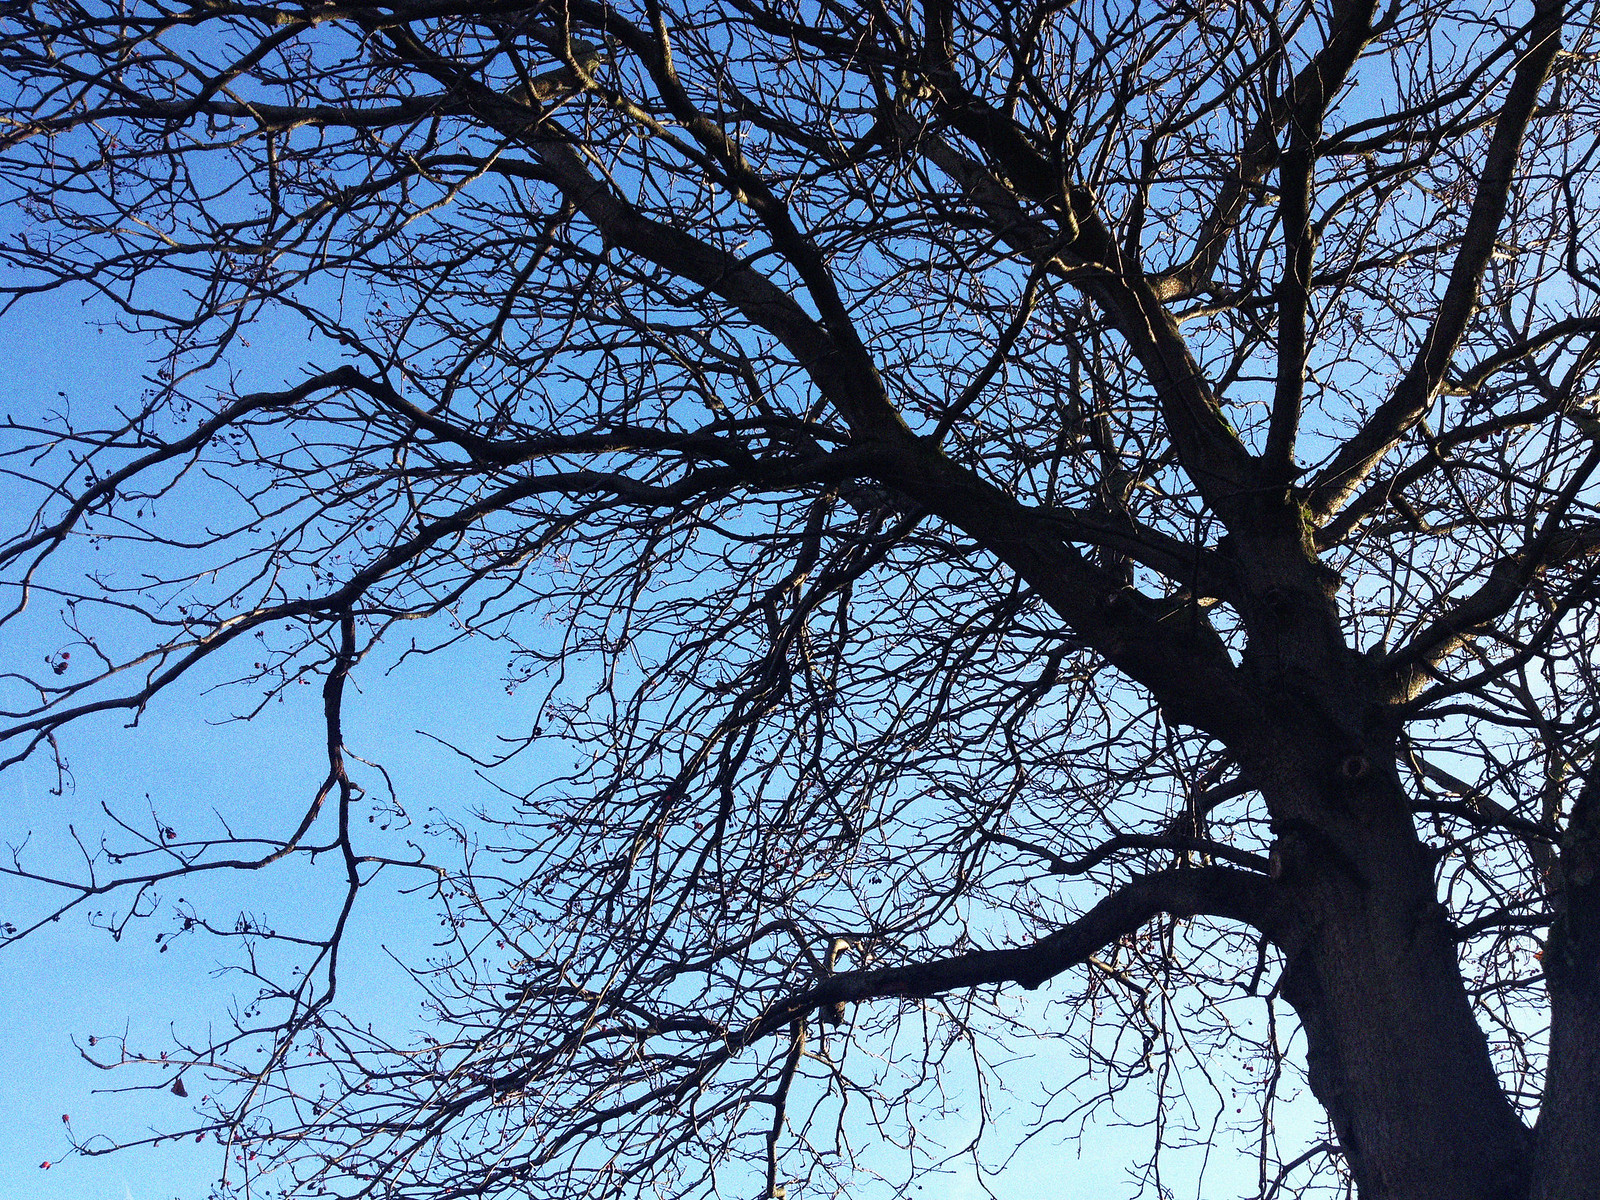 The Blue Sky and The Tree